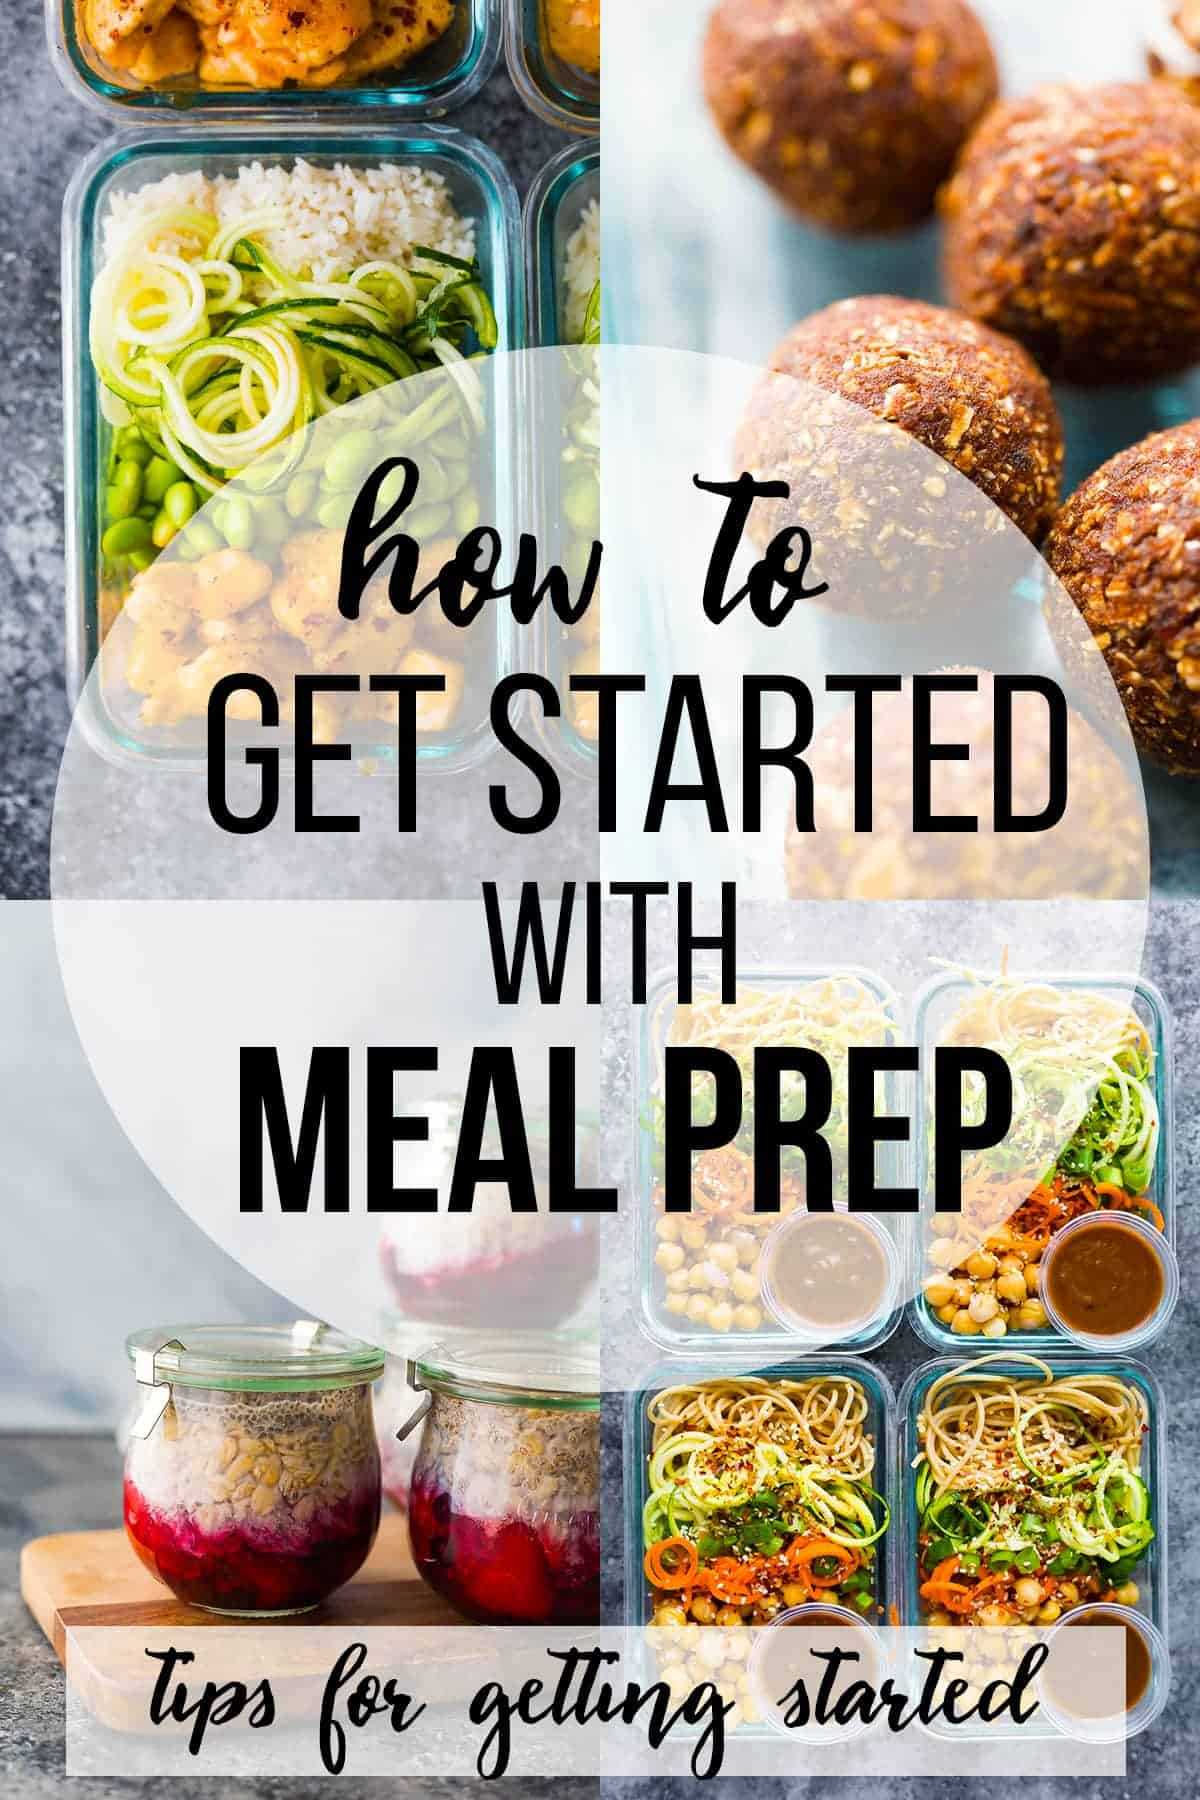 How to meal prep for the week- tons of tips to get started with meal prep, strategies to find a system that works for you, and lots of meal prep recipe inspiration! #sweetpeasandsaffron #mealprep #howto #howtomealprep